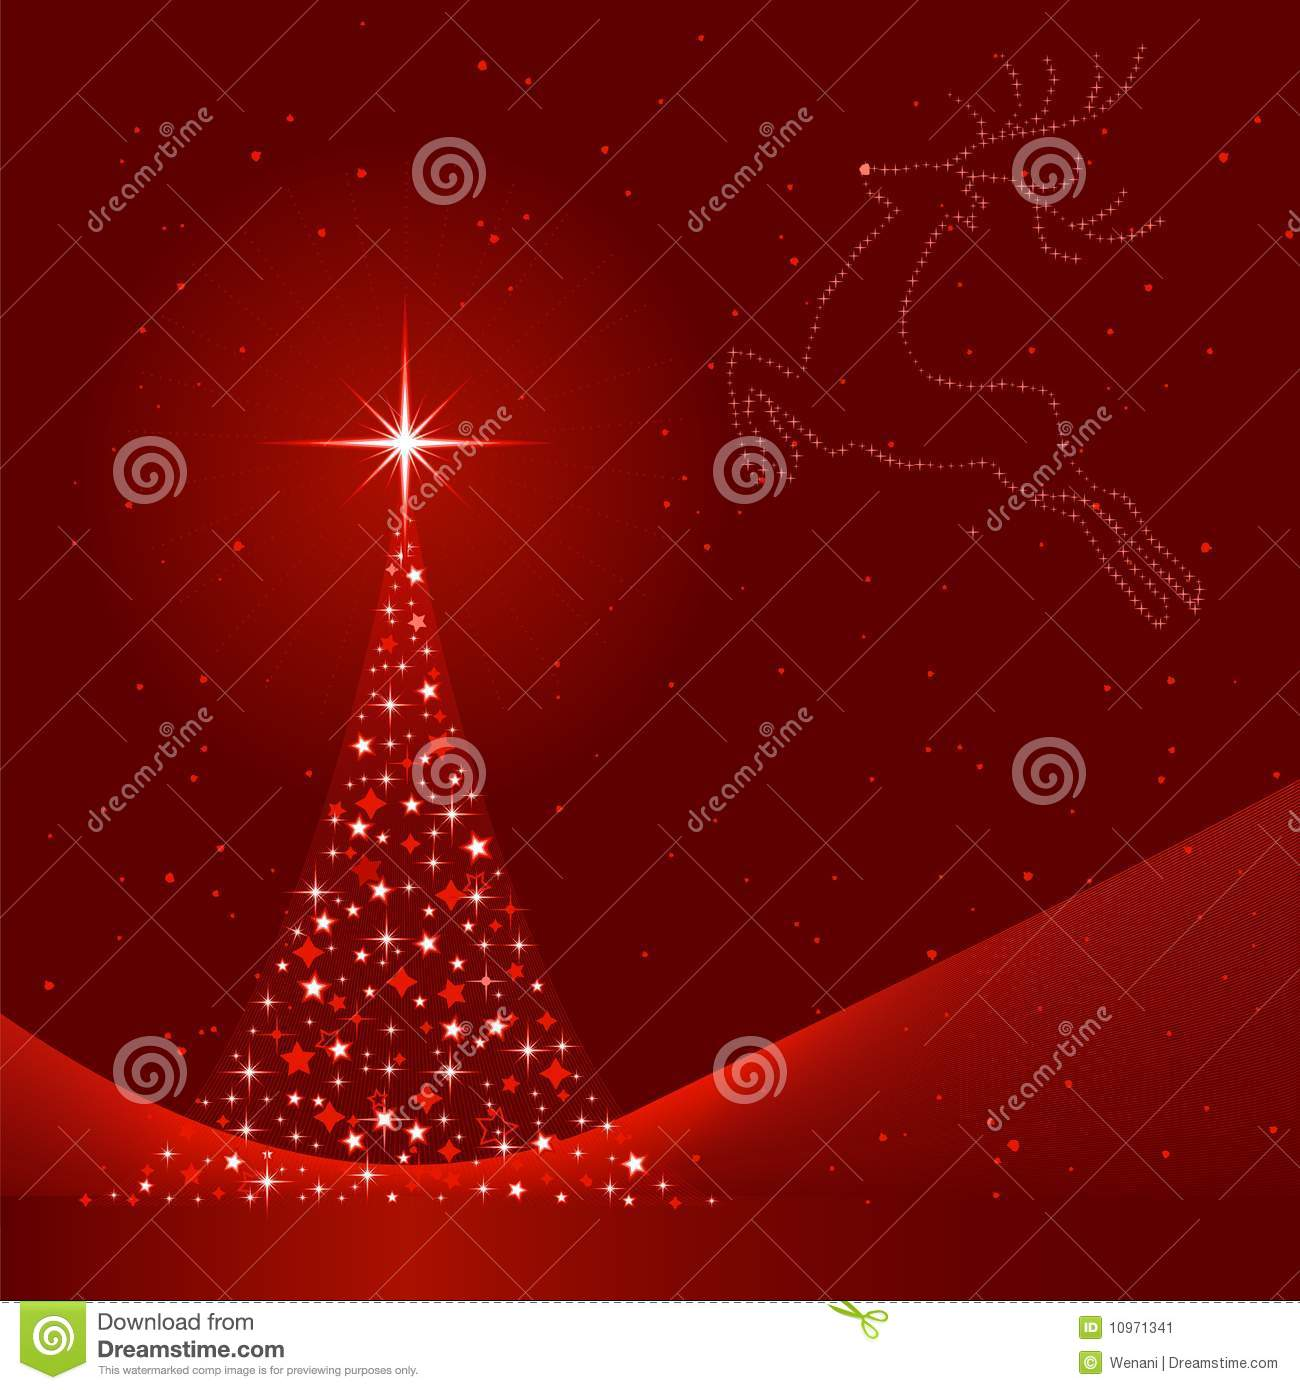 Xmas background images - Xmas Background With Christmas Tree And Reindeer Stock Image